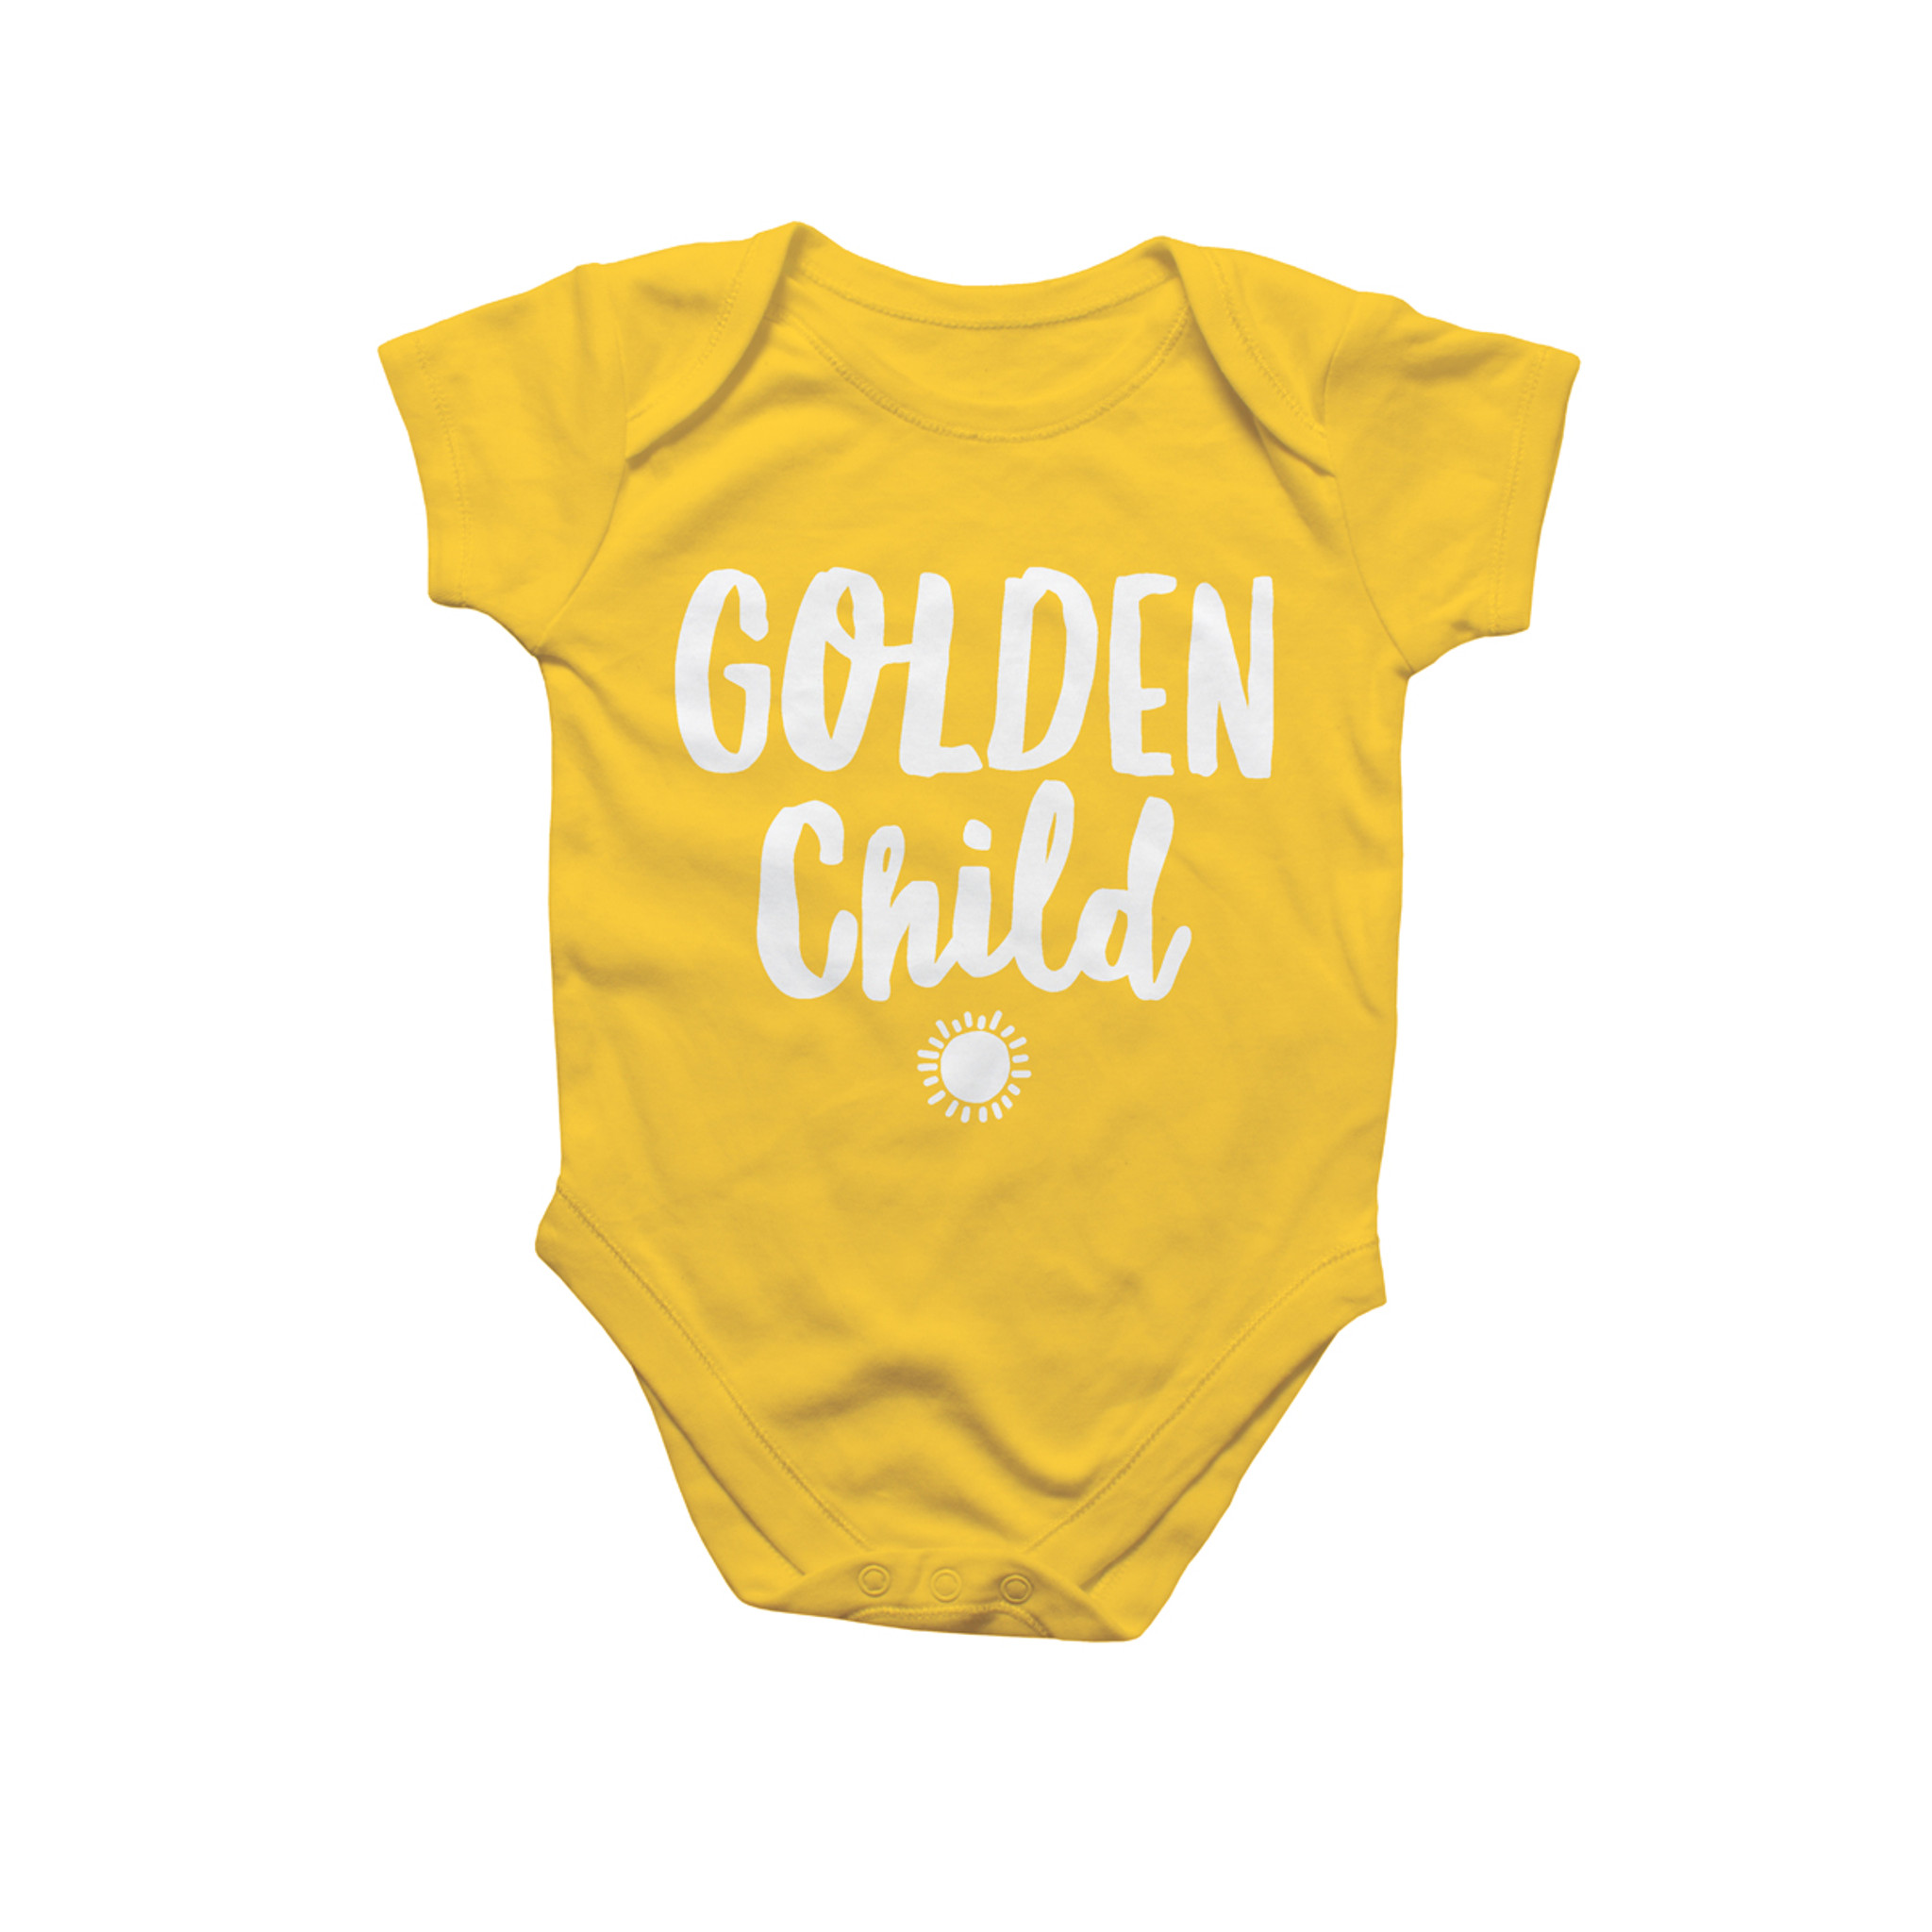 Golden Child Baby Onesie by Rock Scissor Paper